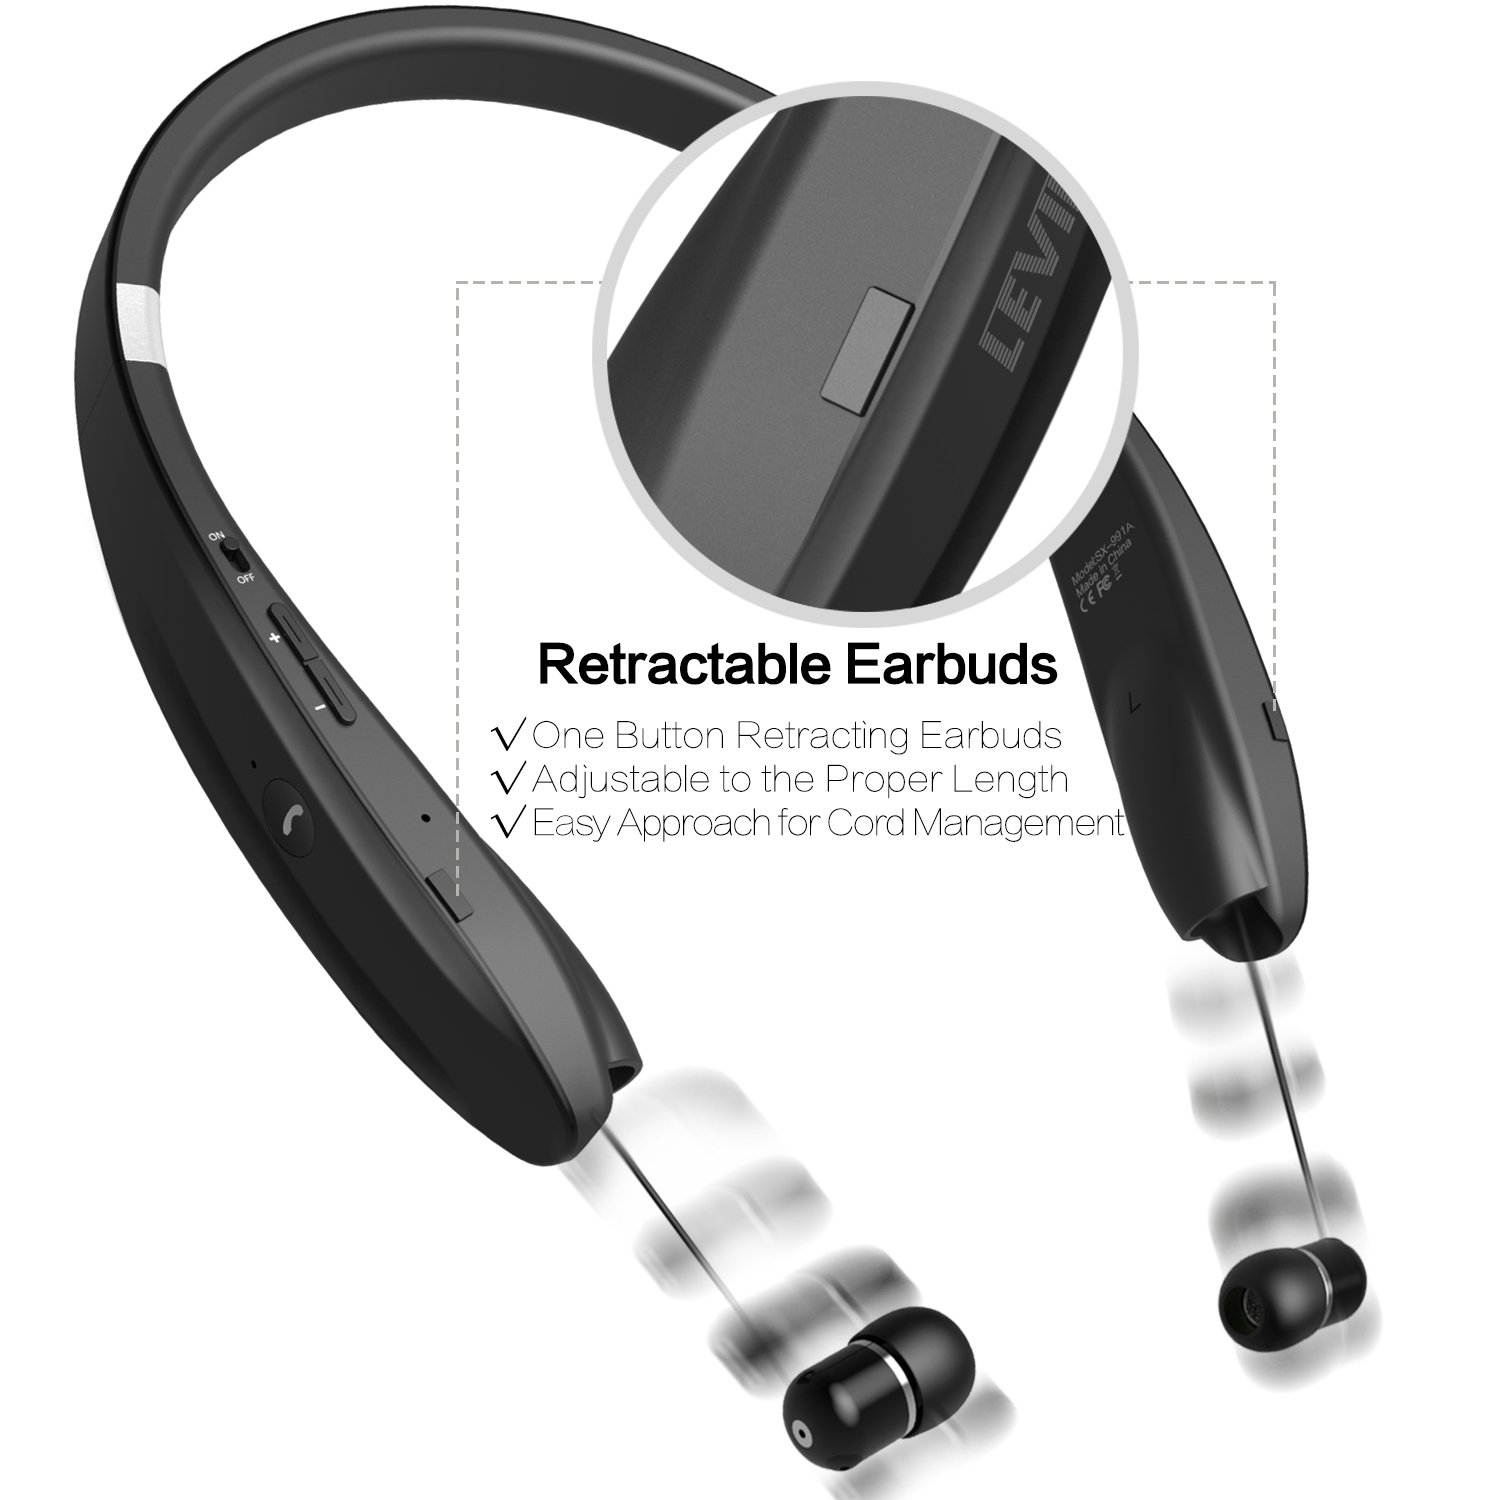 Bluetooth Headphones Wireless Neckband Headset – Sweatproof Foldable Earphones with Mic, Retractable Earbud and 16 Hours Play Time for iPhone Android Cellphone Tablets TV